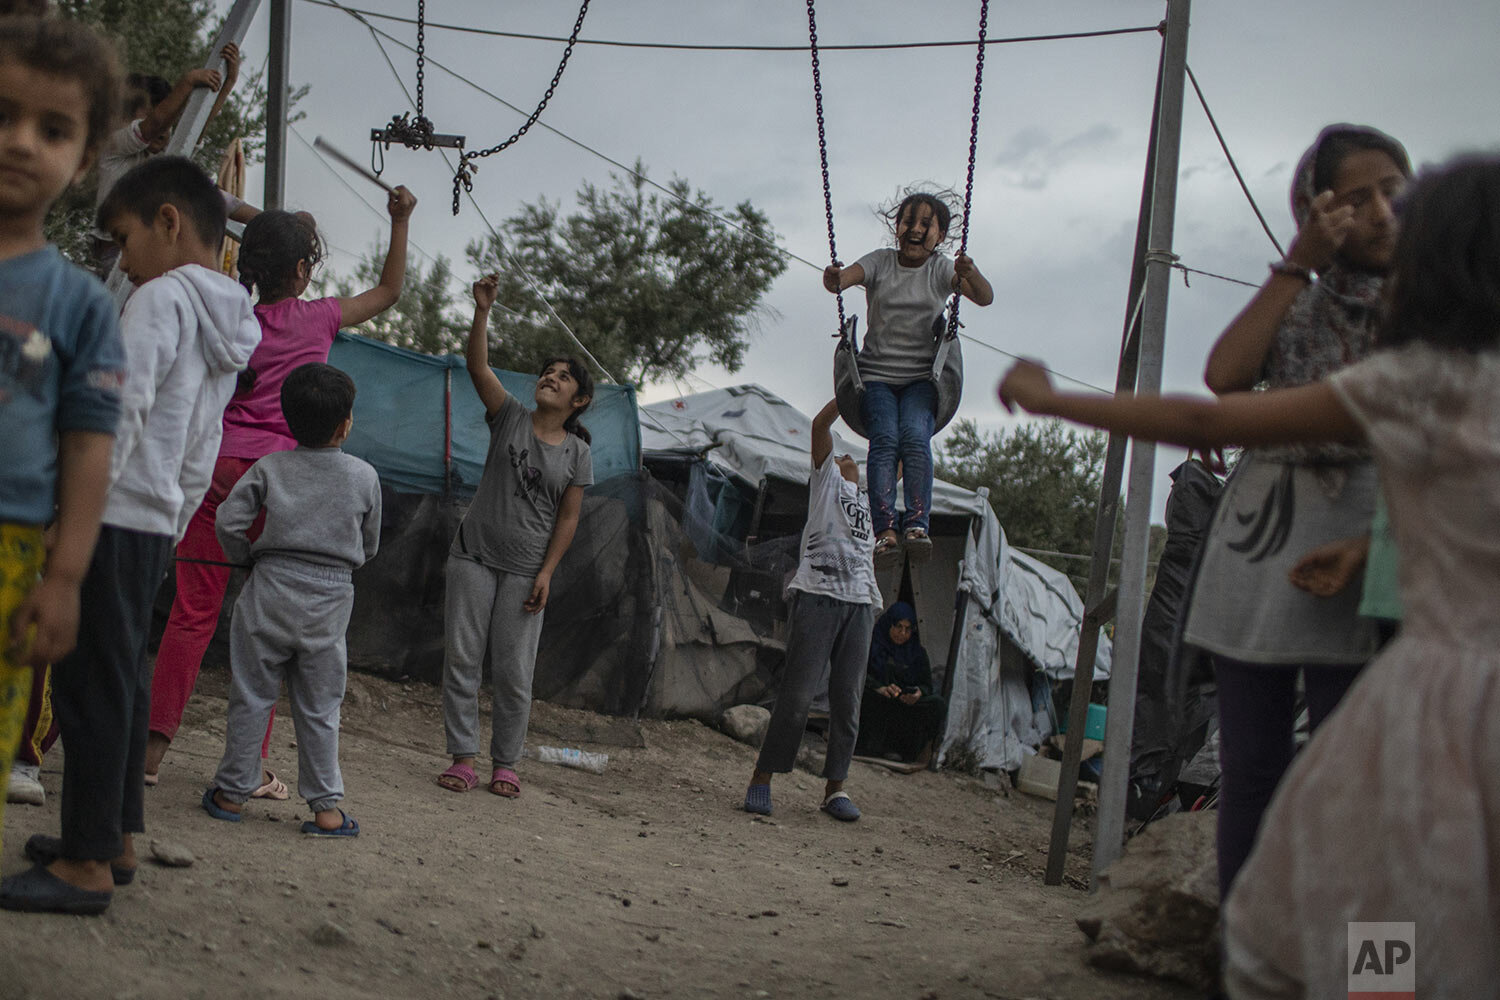 Children play near swings at the Moria refugee and migrant camp on the Greek island of Lesbos, Friday Oct. 4, 2019. (AP Photo/Petros Giannakouris)